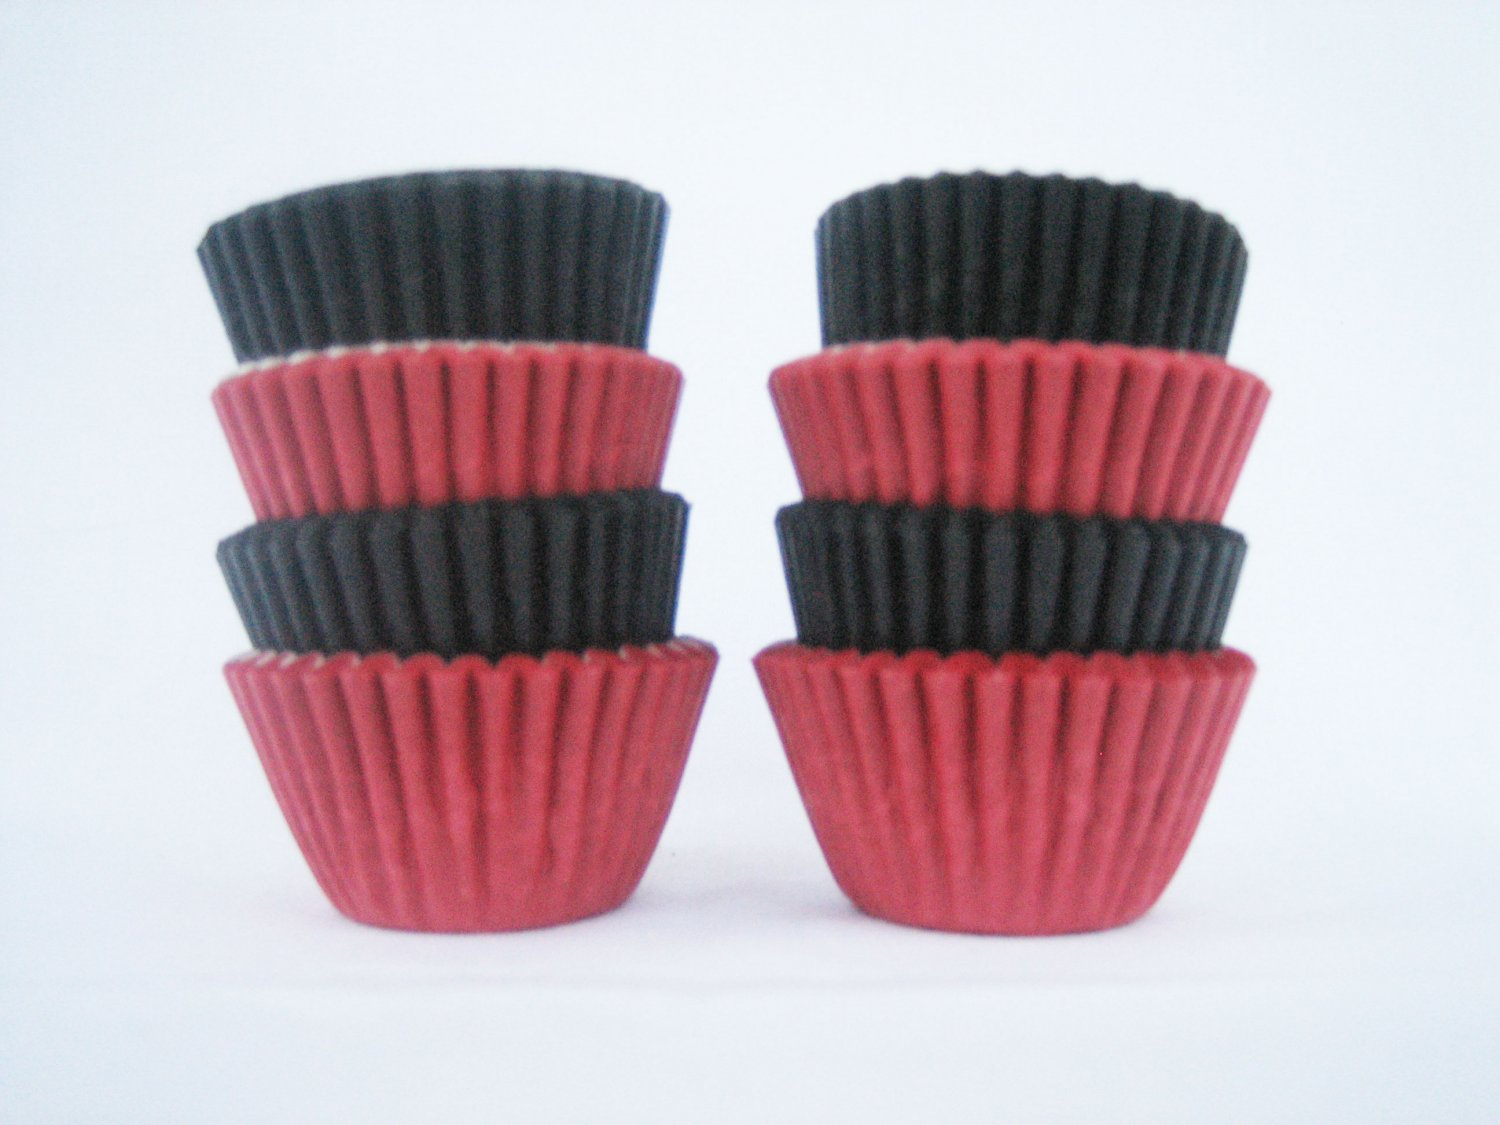 1000pcs Black and Red Mini Paper Cake Cup for Candy/Cookies/Petite/Cake 6cm